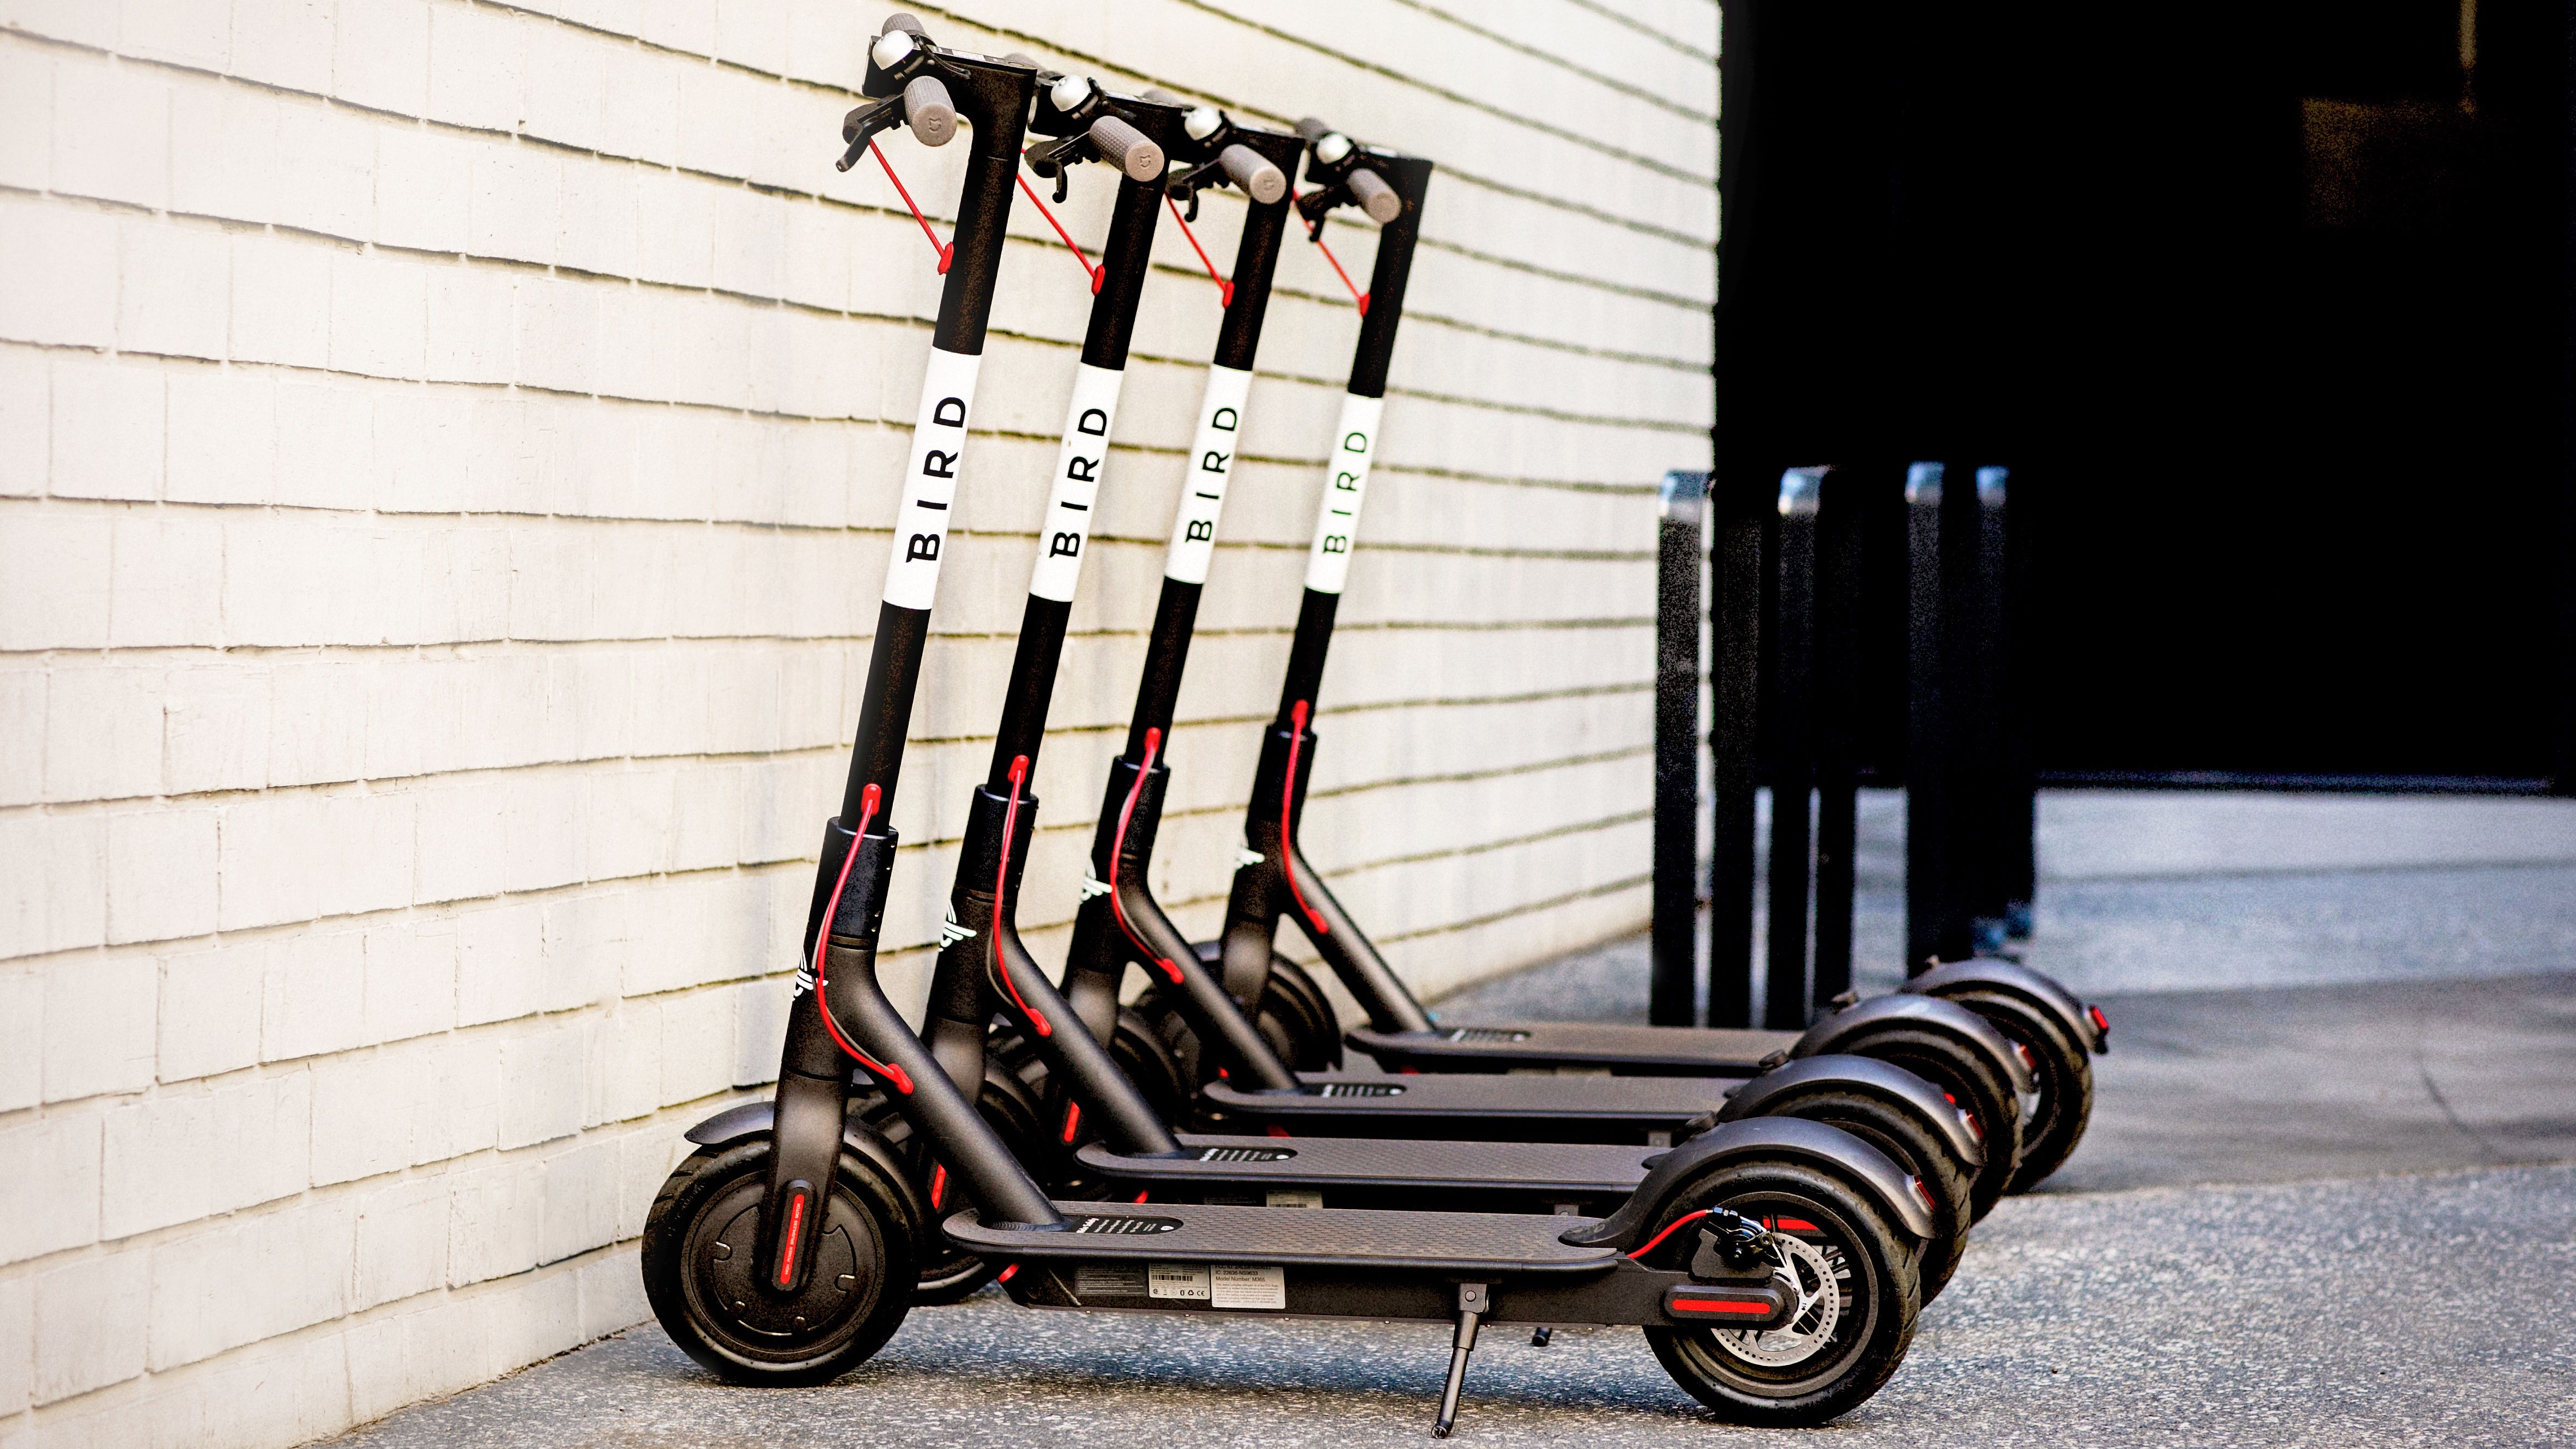 A line of Bird electric scooters